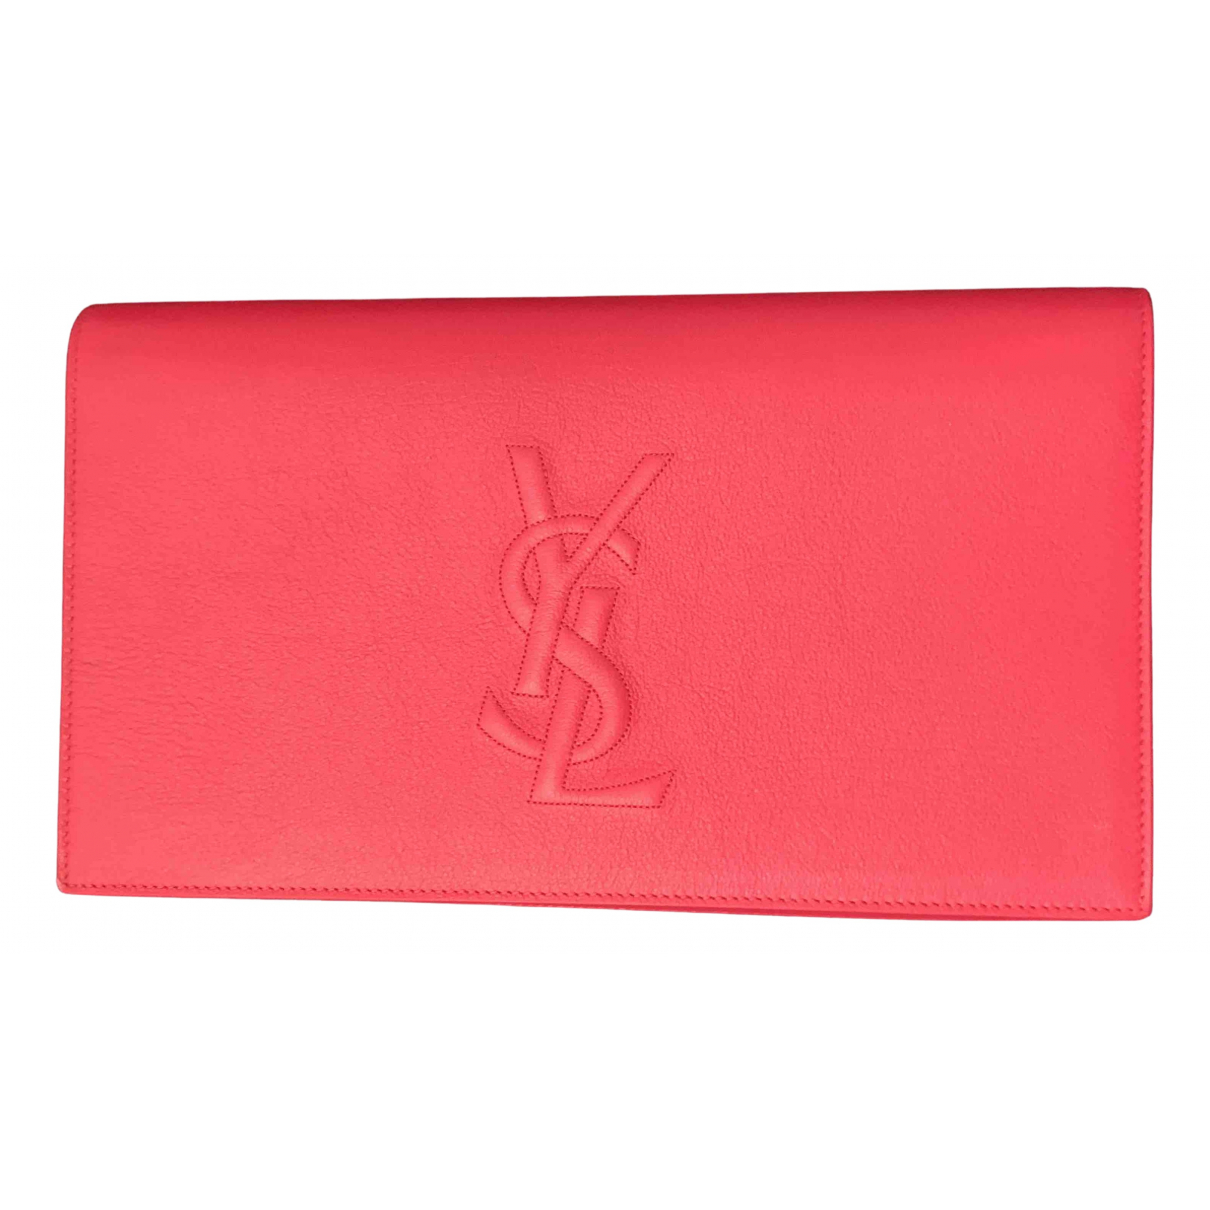 Yves Saint Laurent Belle de Jour Pink Leather Clutch bag for Women N